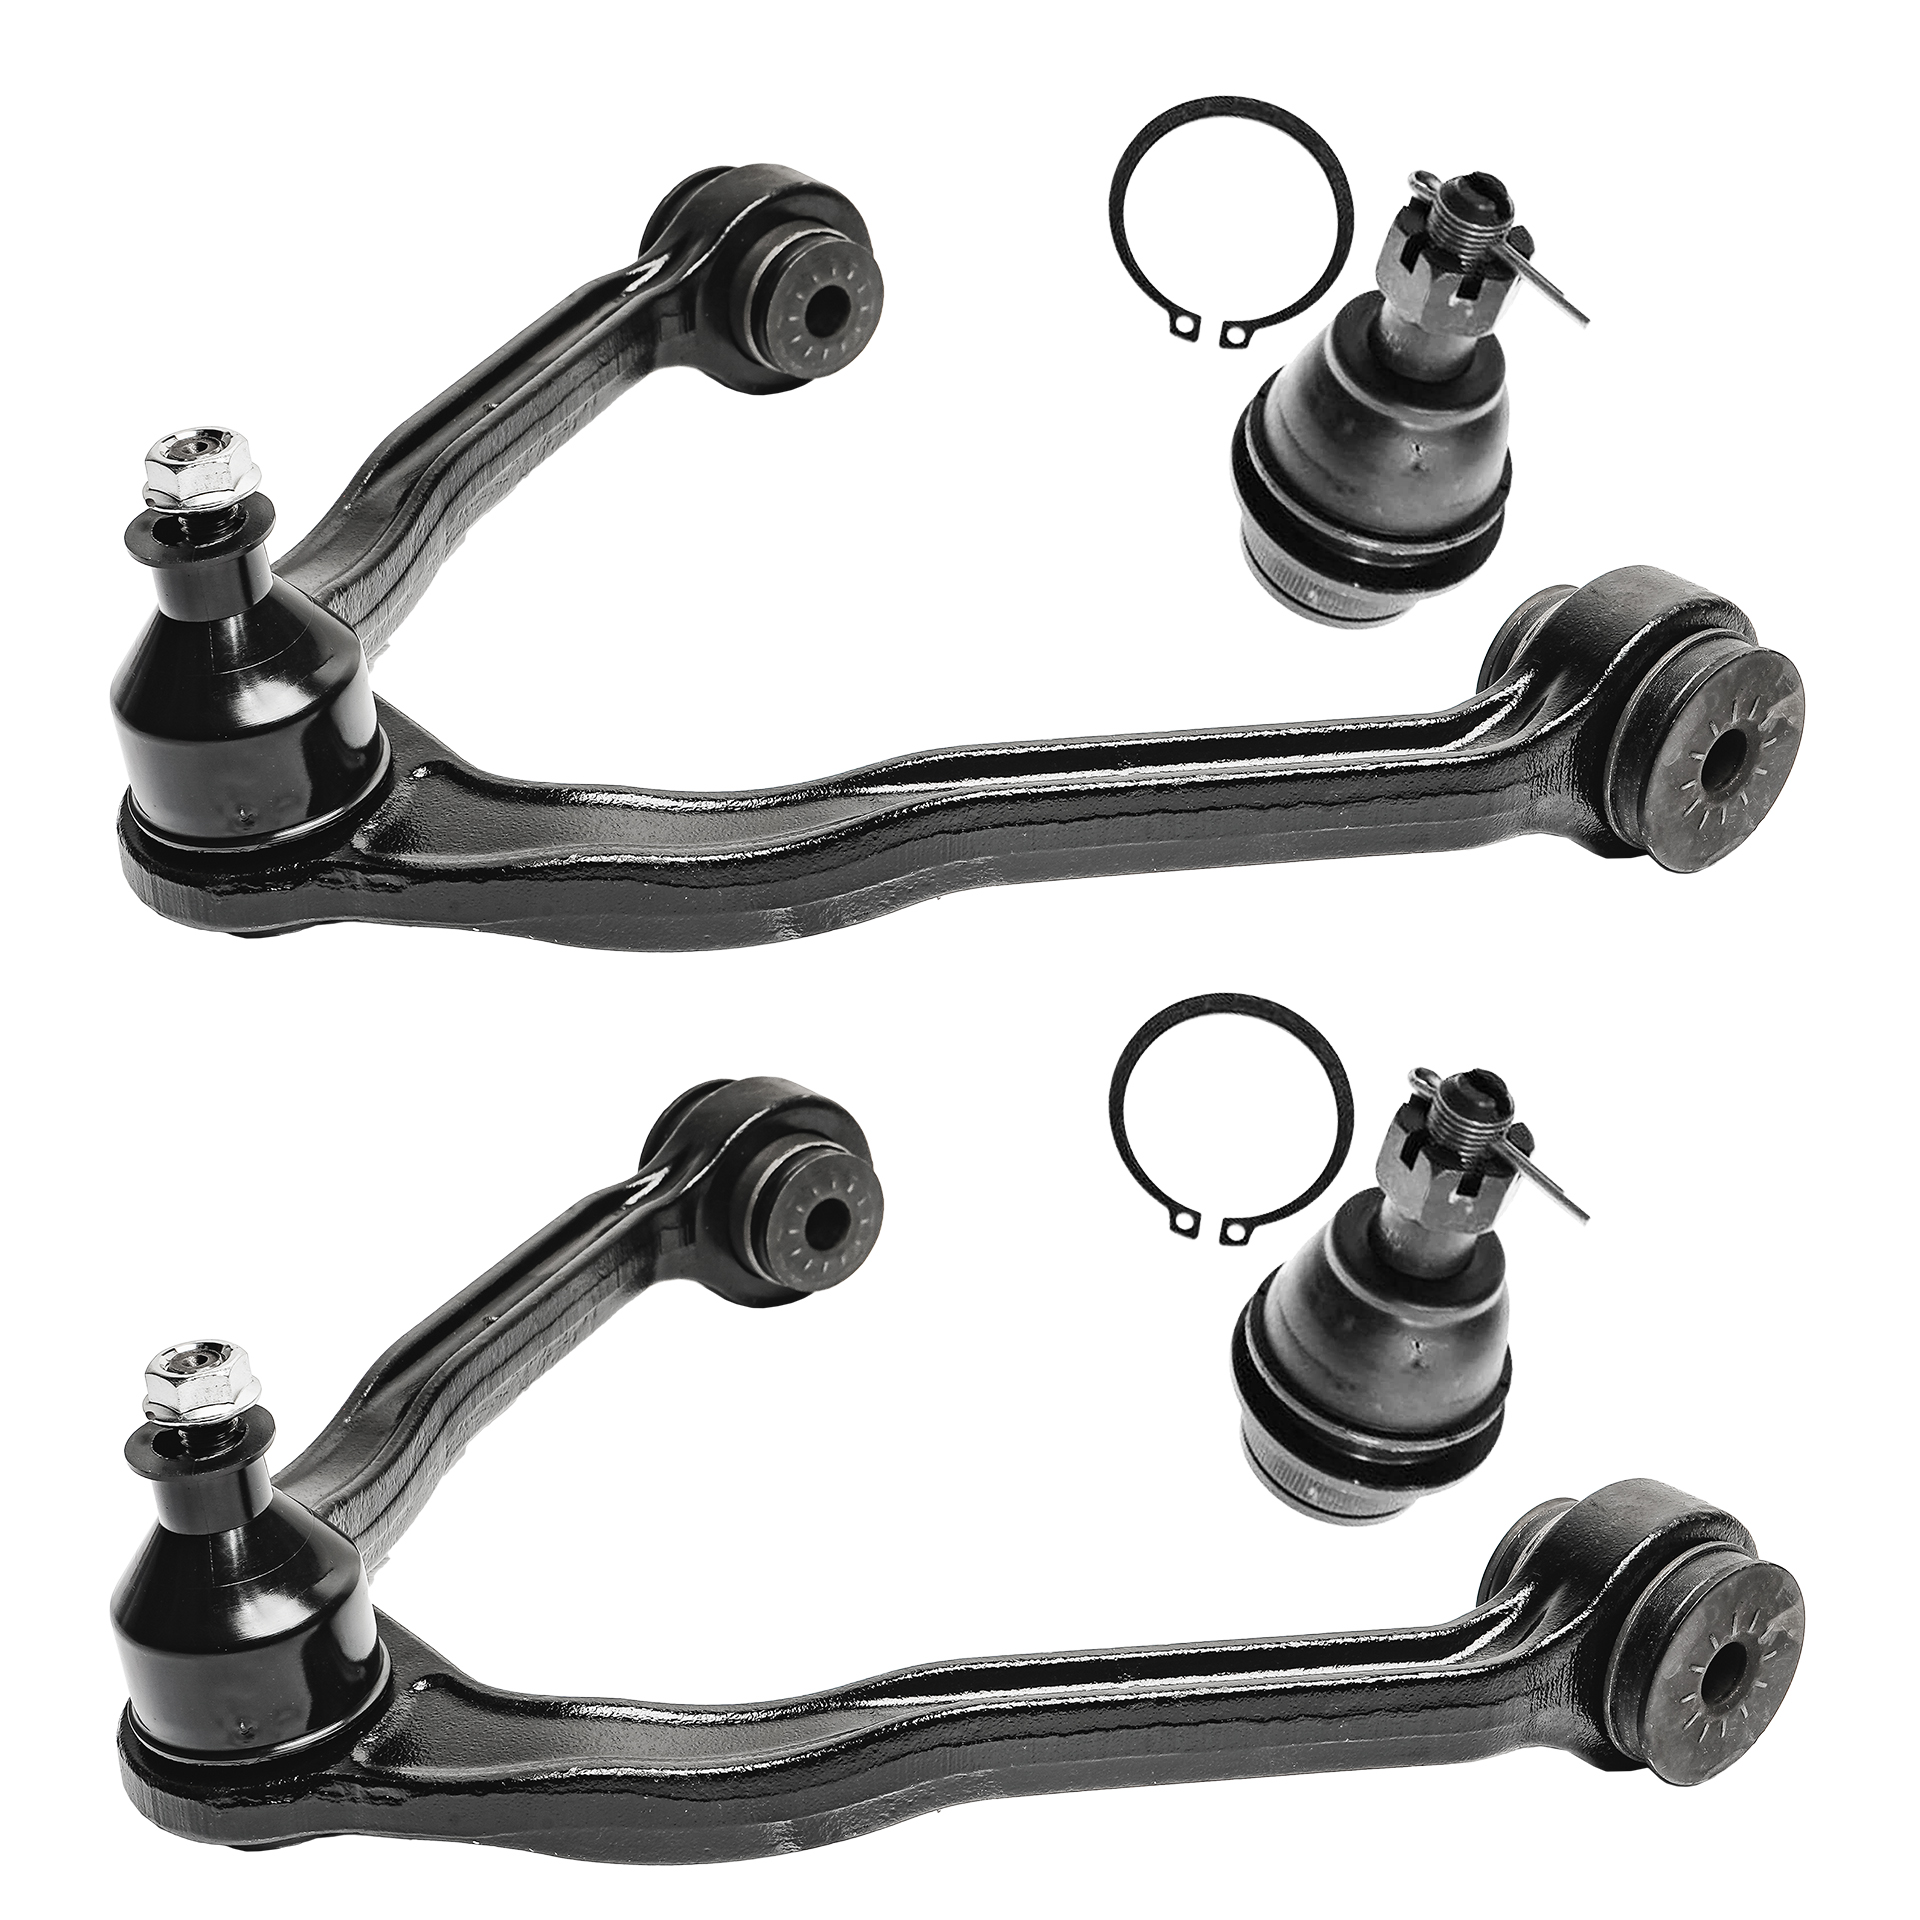 2 Upper Control Arms w//Ball Joints and 2 Lower Ball Joints Fits 4x4 Models Only Detroit Axle Brand New 4 Piece Front Suspension Kit